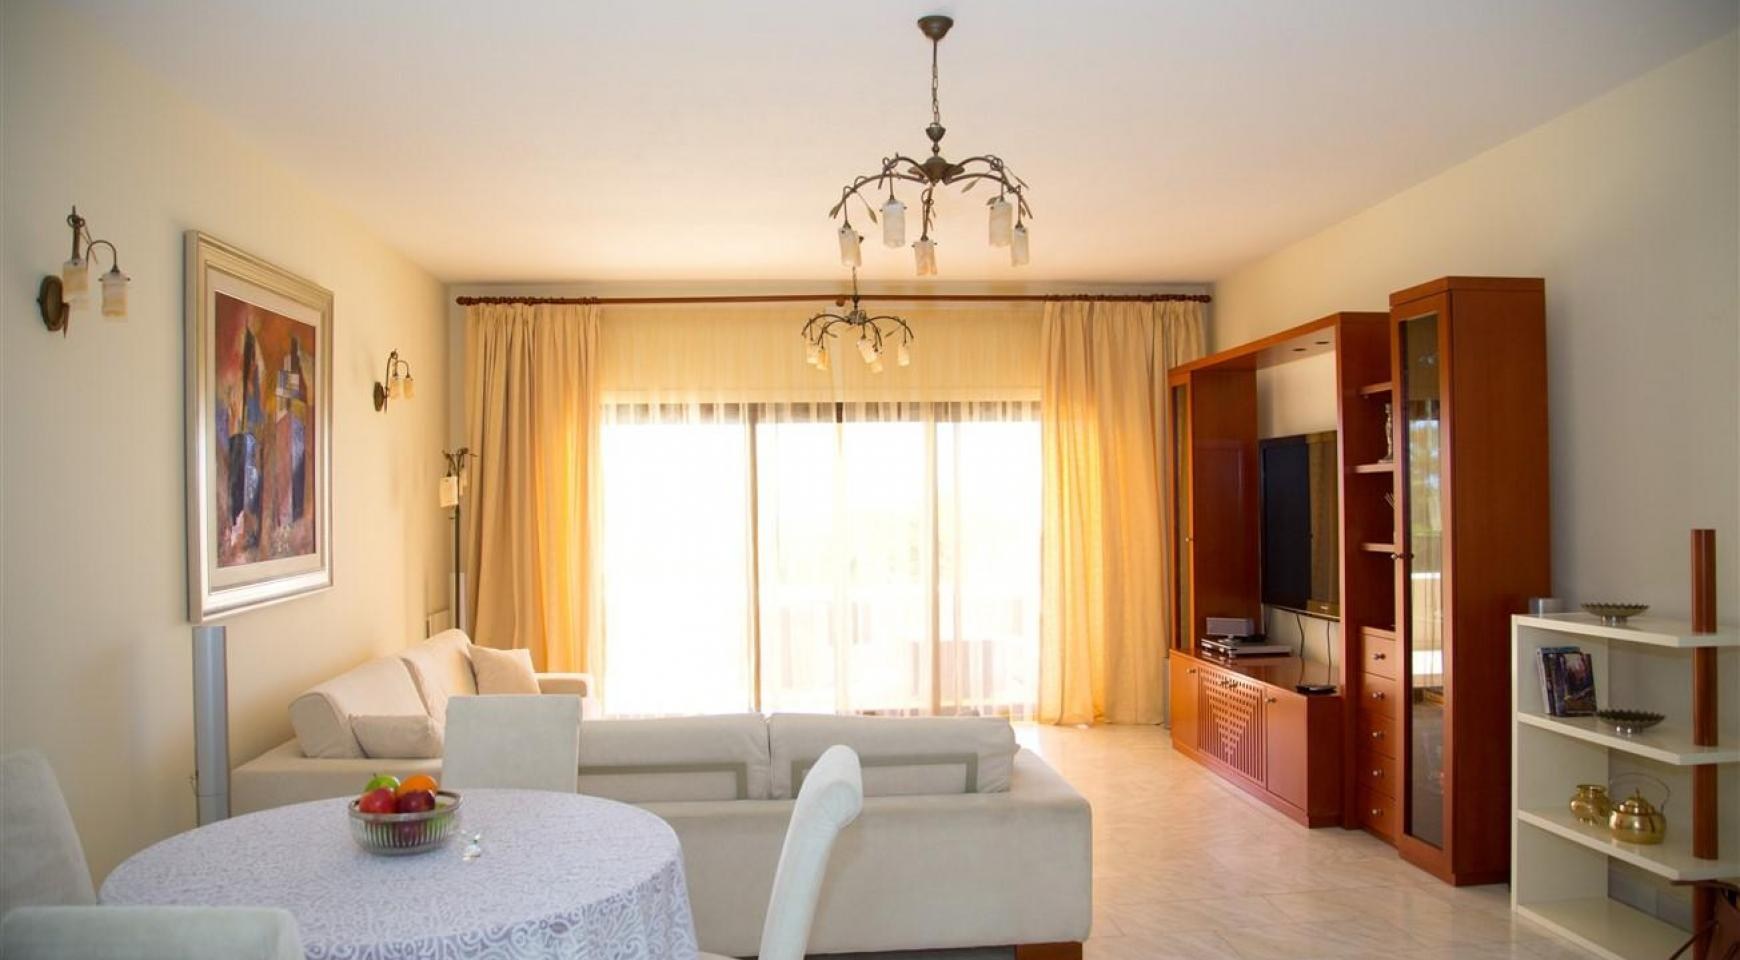 Luxury 3 Bedroom Apartment Thera 102 by the Sea - 37